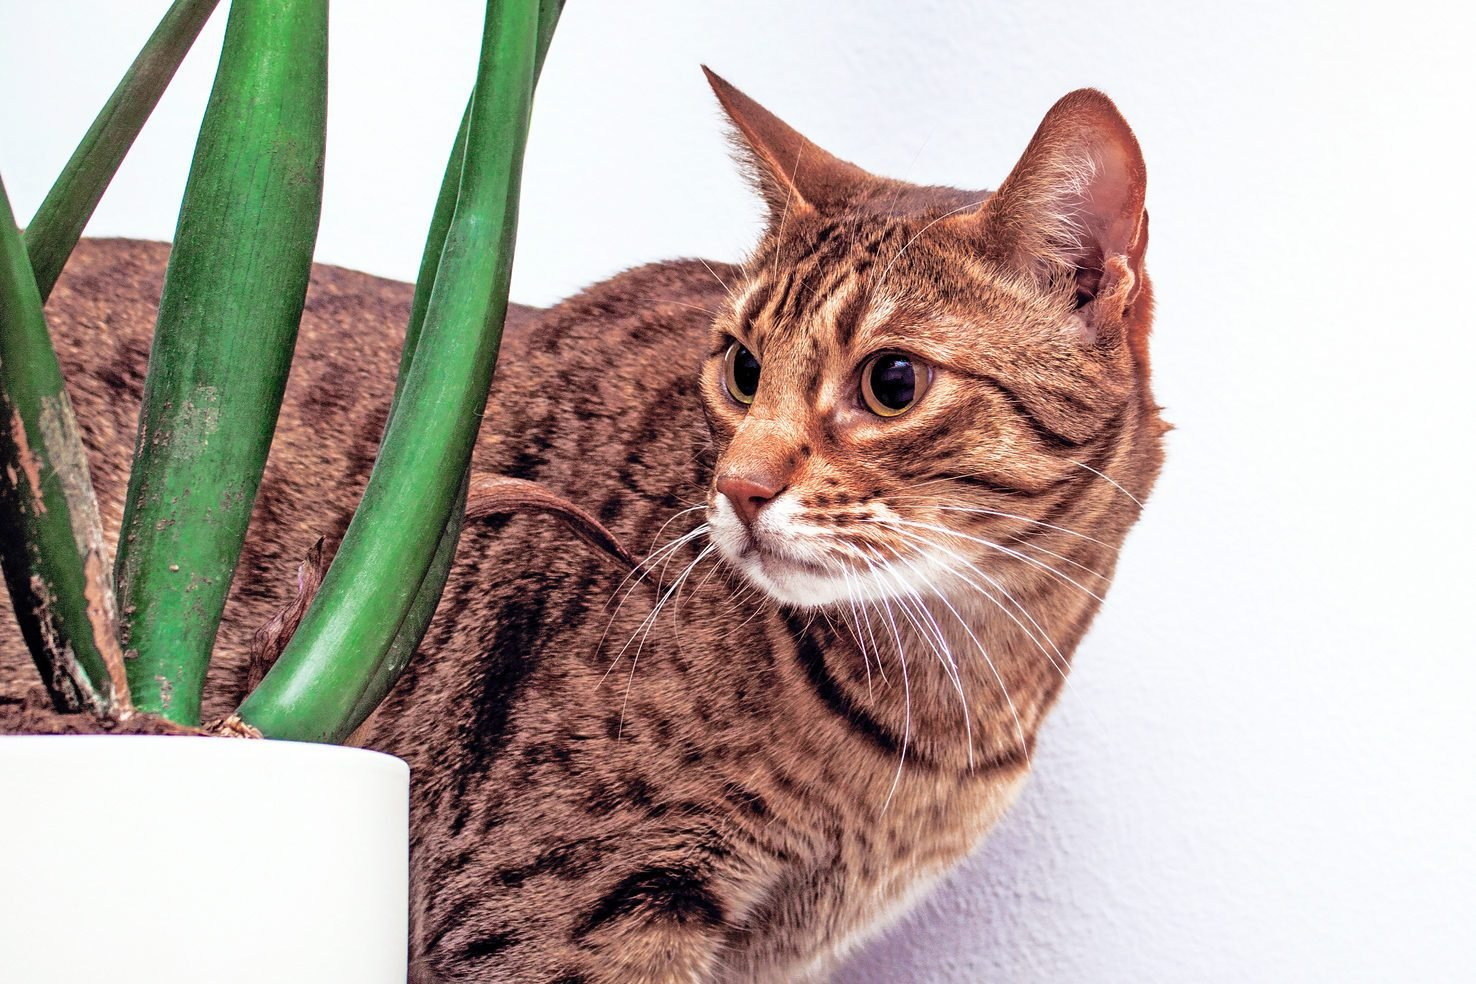 Ocicat cat near flower on white wall background, housecat indoor, copy space